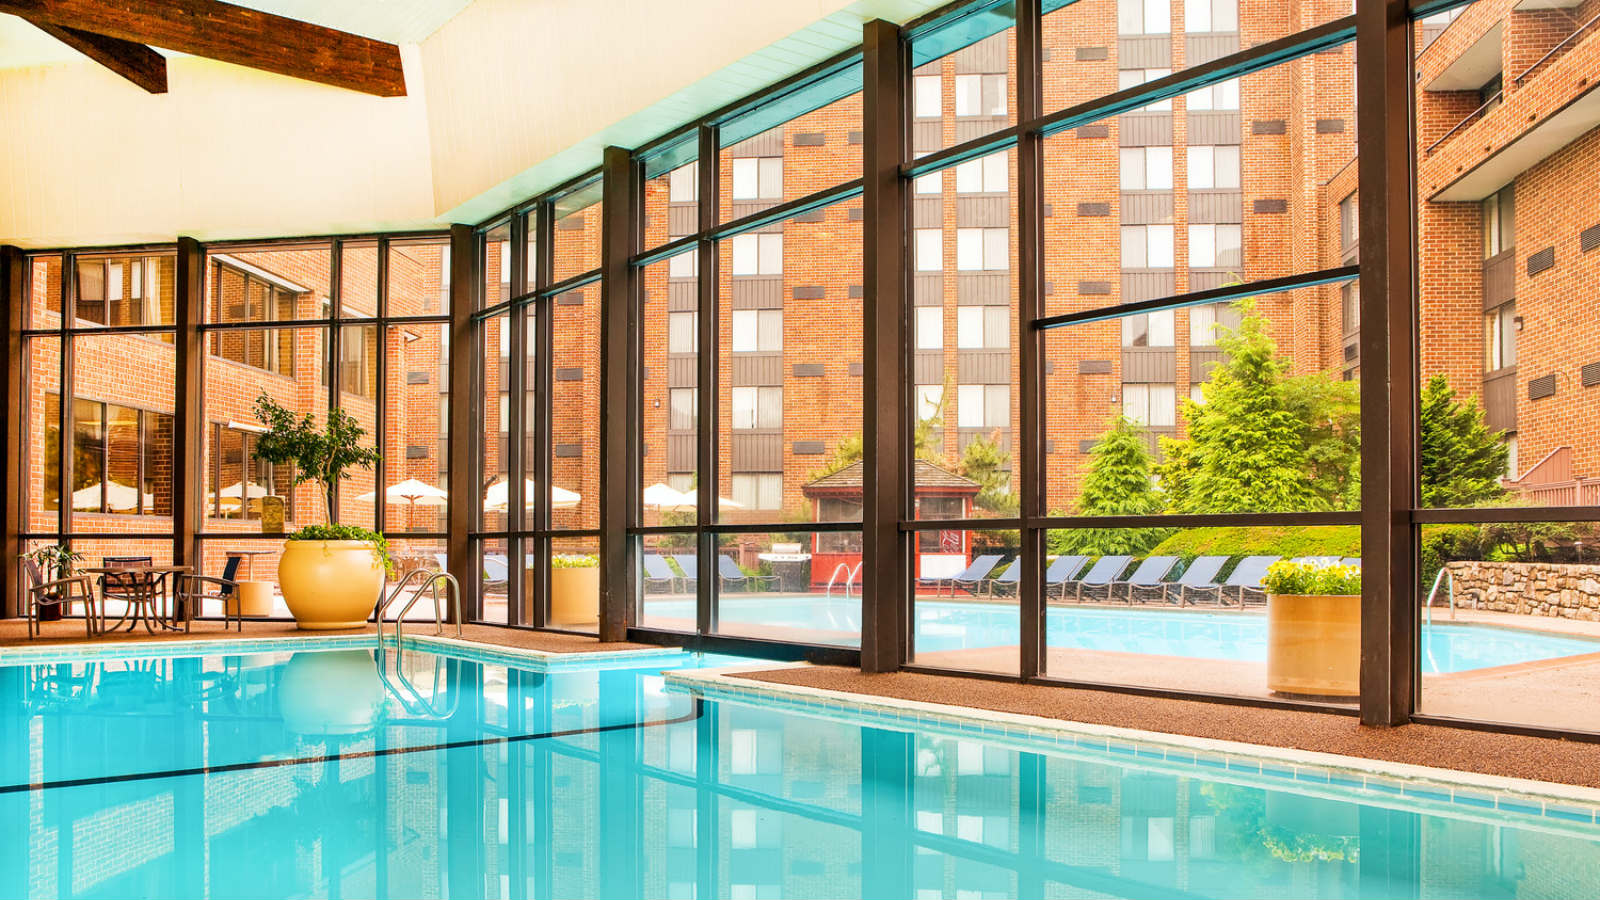 Hotels Near Times Square With Pool